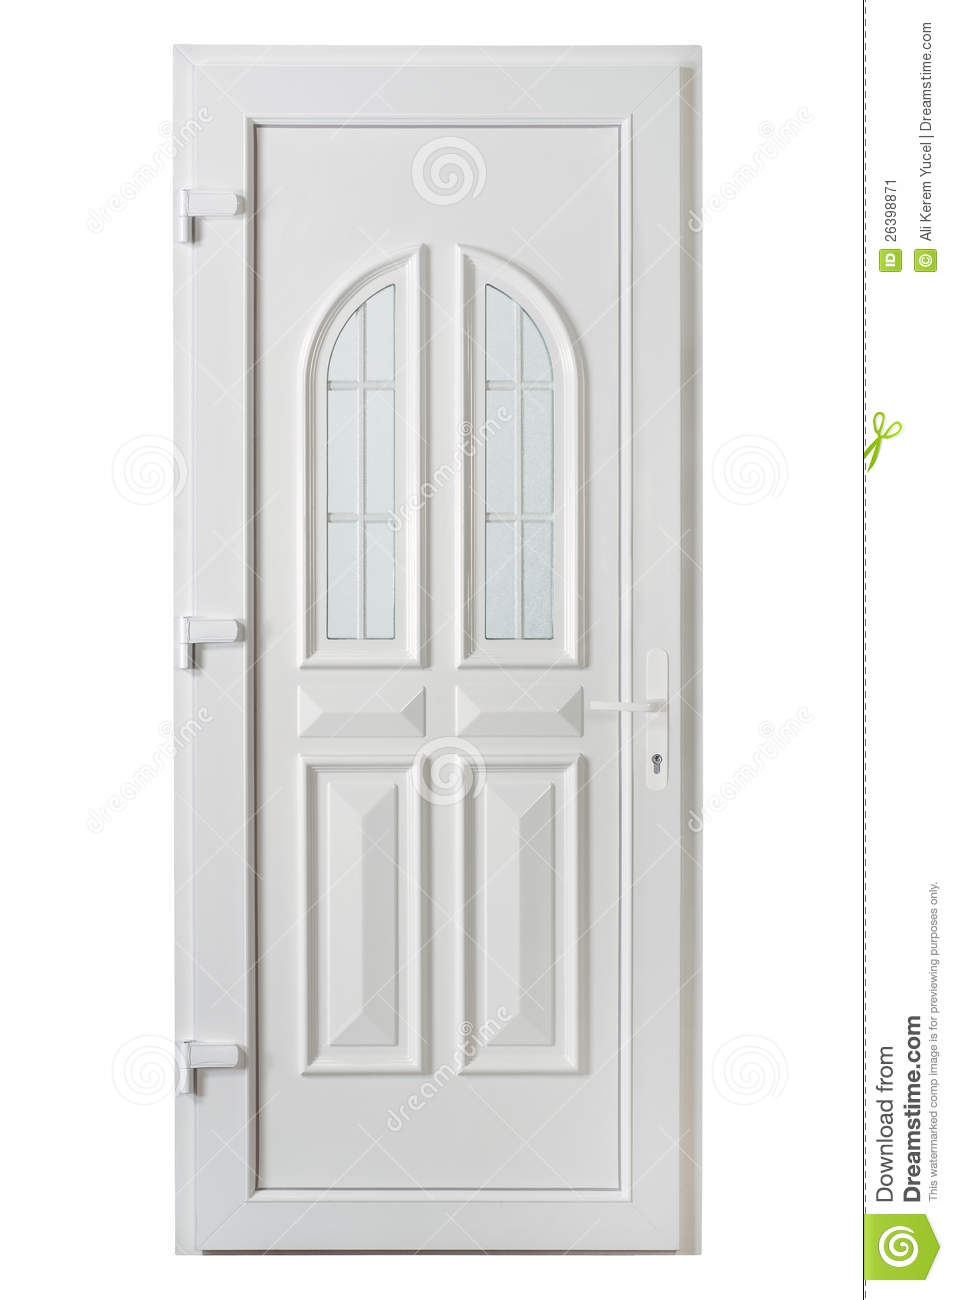 Pvc Panel Doors : American panel pvc door with frosted glass stock image